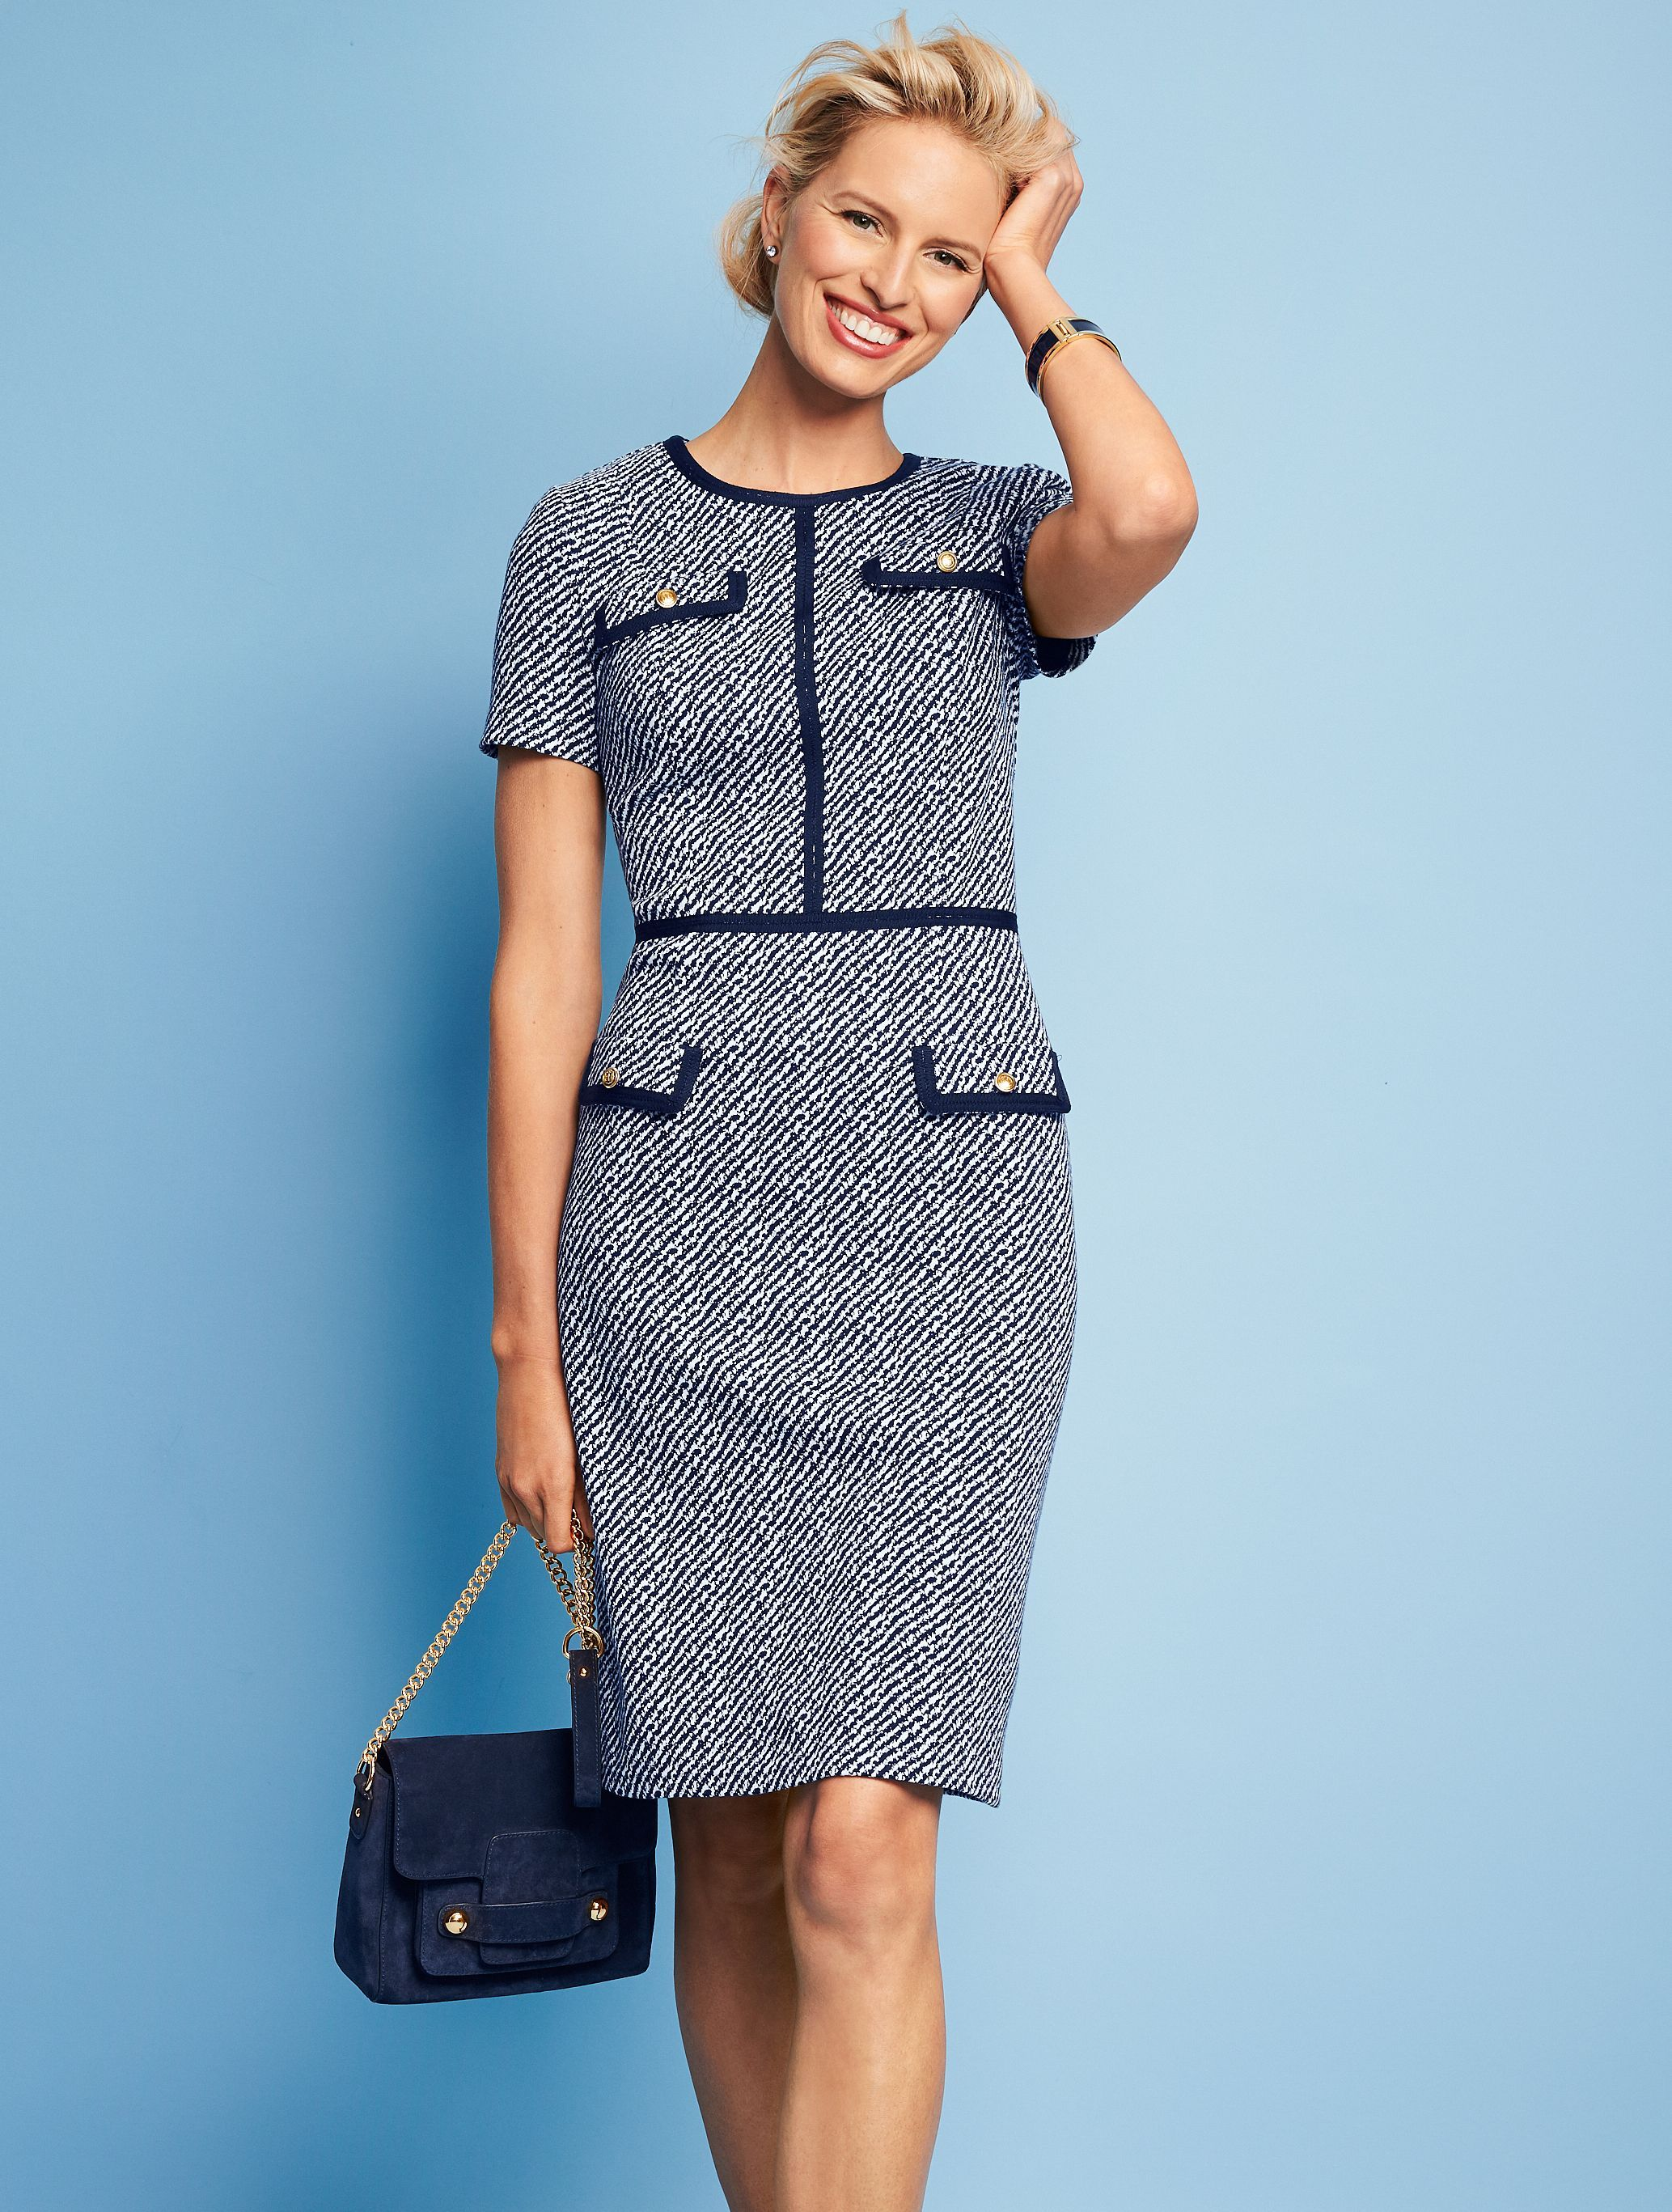 077b5058f1e Sophisticated and stylish—everything a dress should be...and more. This  season-friendly dress is comfortable